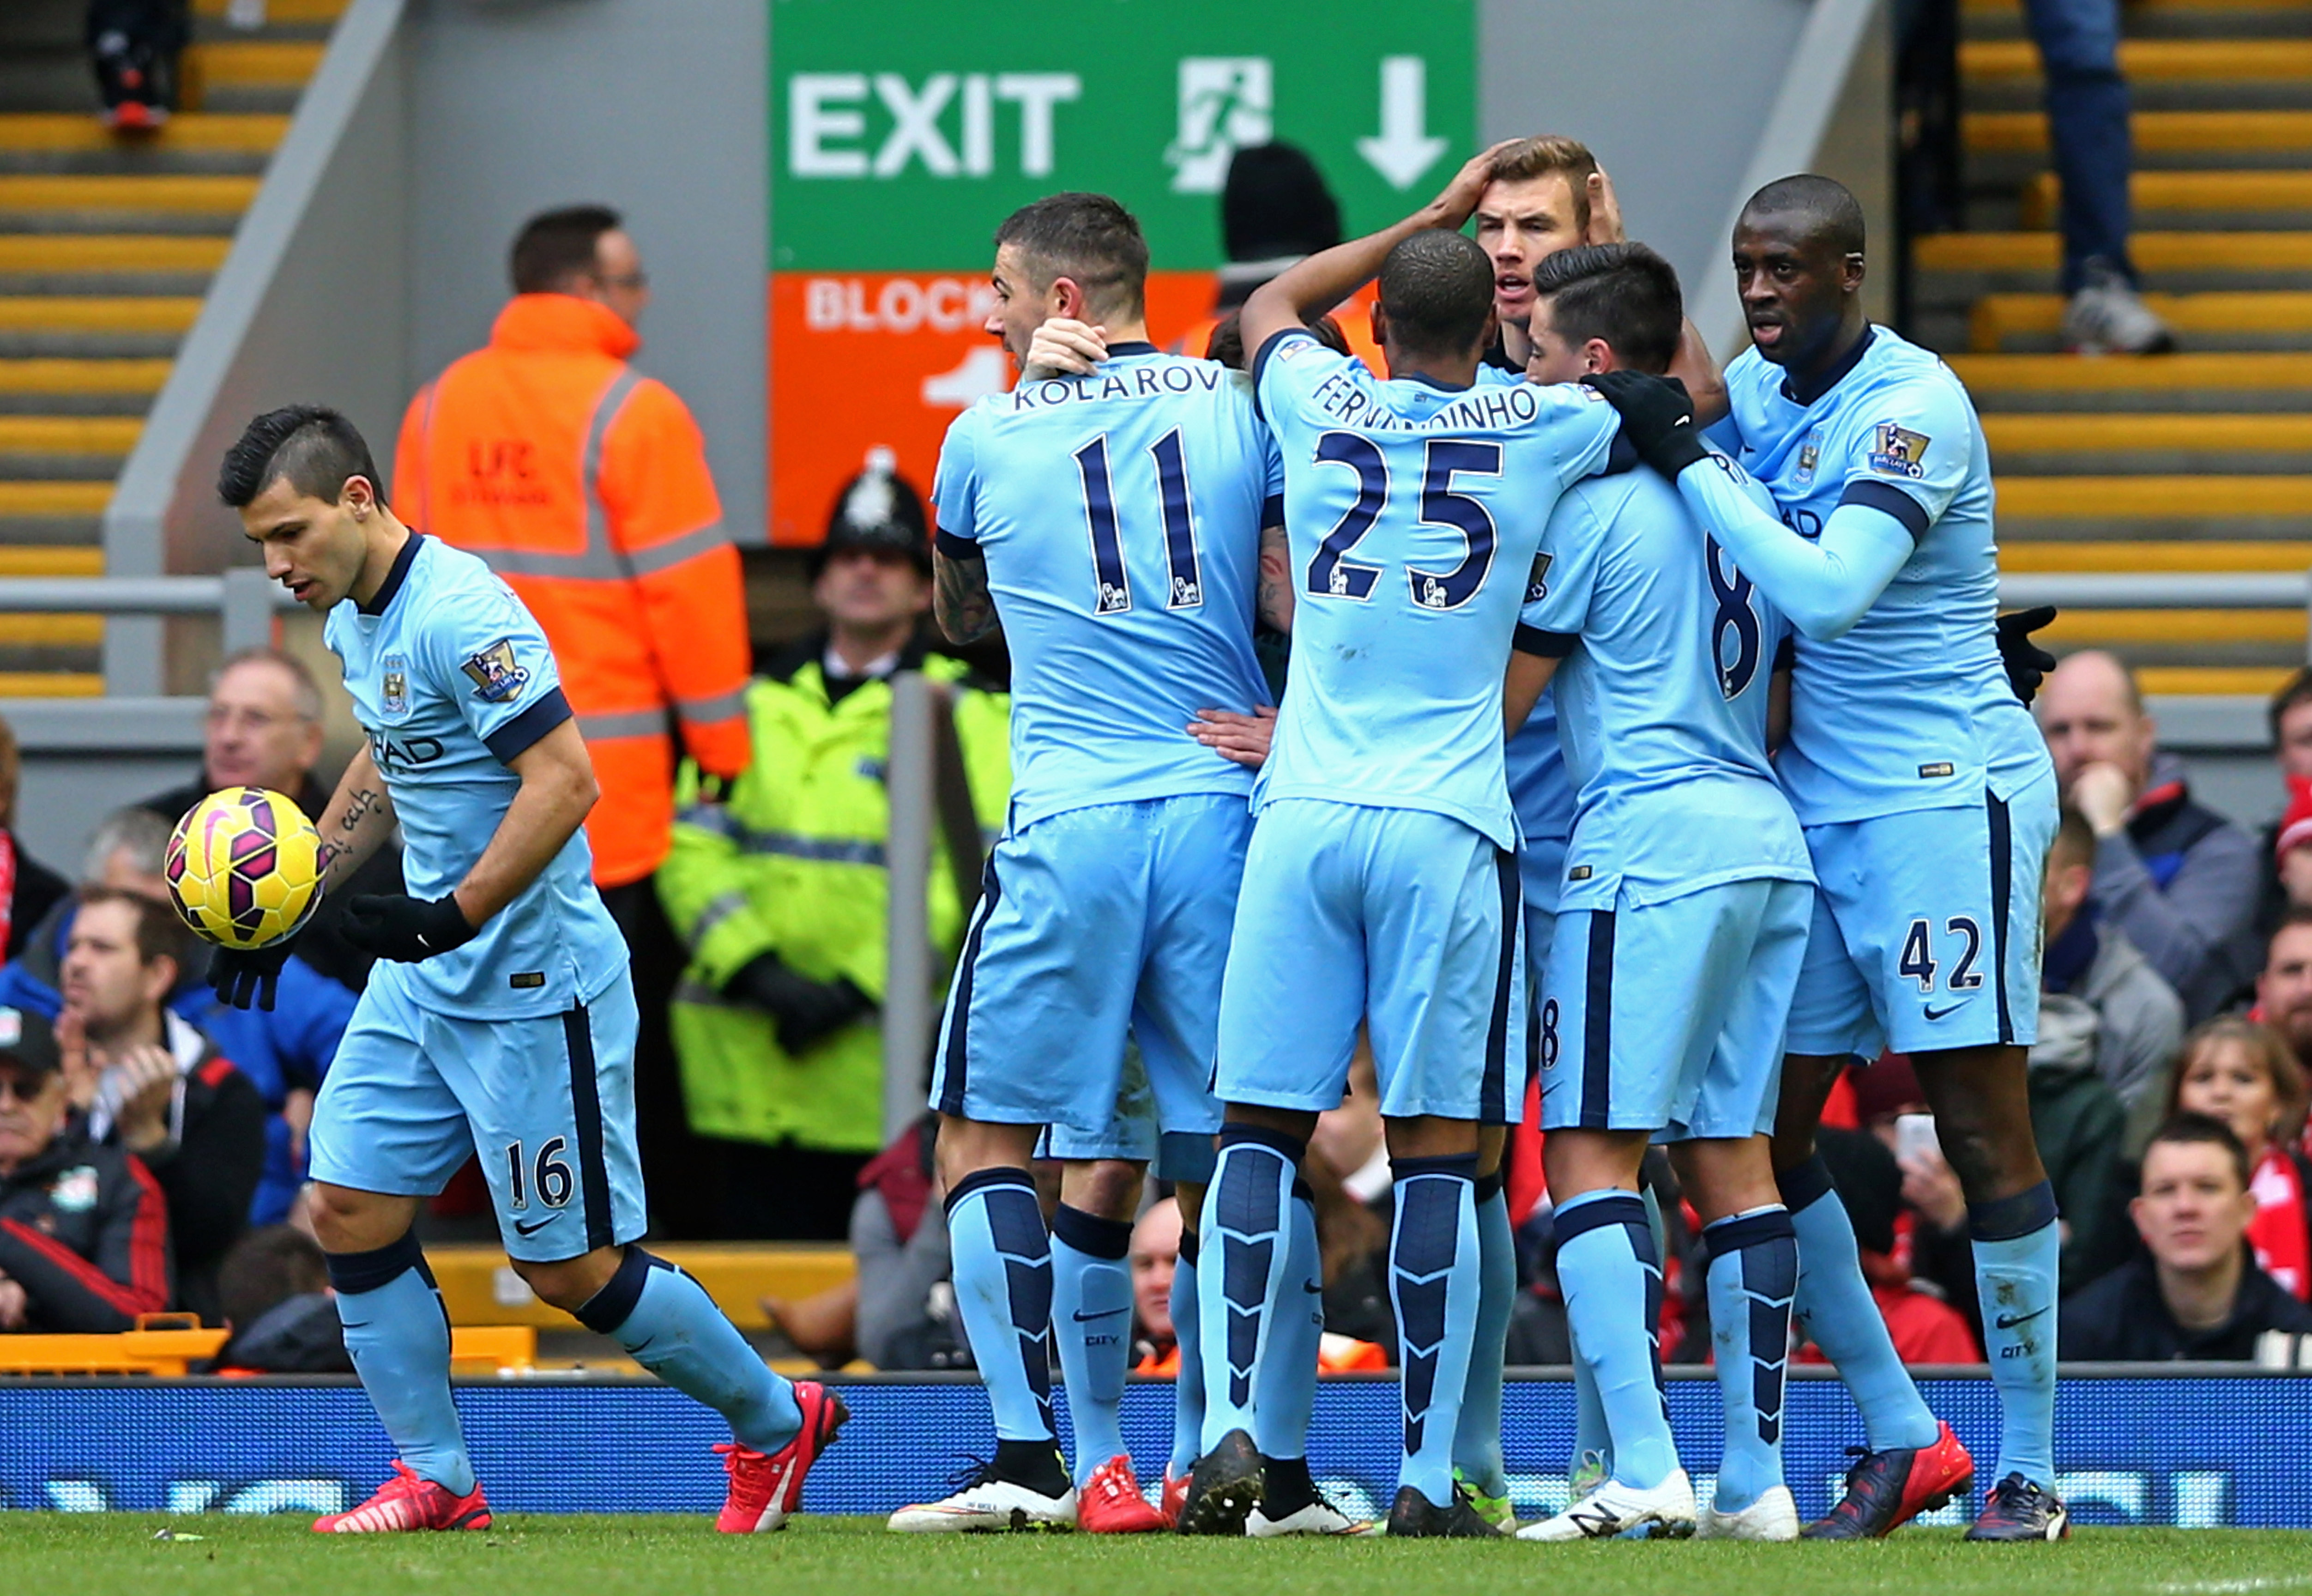 Edin Dzeko (3rd R) of Manchester City is congratulated by teammates after scoring a goal to level the scores at 1-1 during the Barclays Premier League match between Liverpool and Manchester City at Anfield on March 1, 2015 in Liverpool, England.